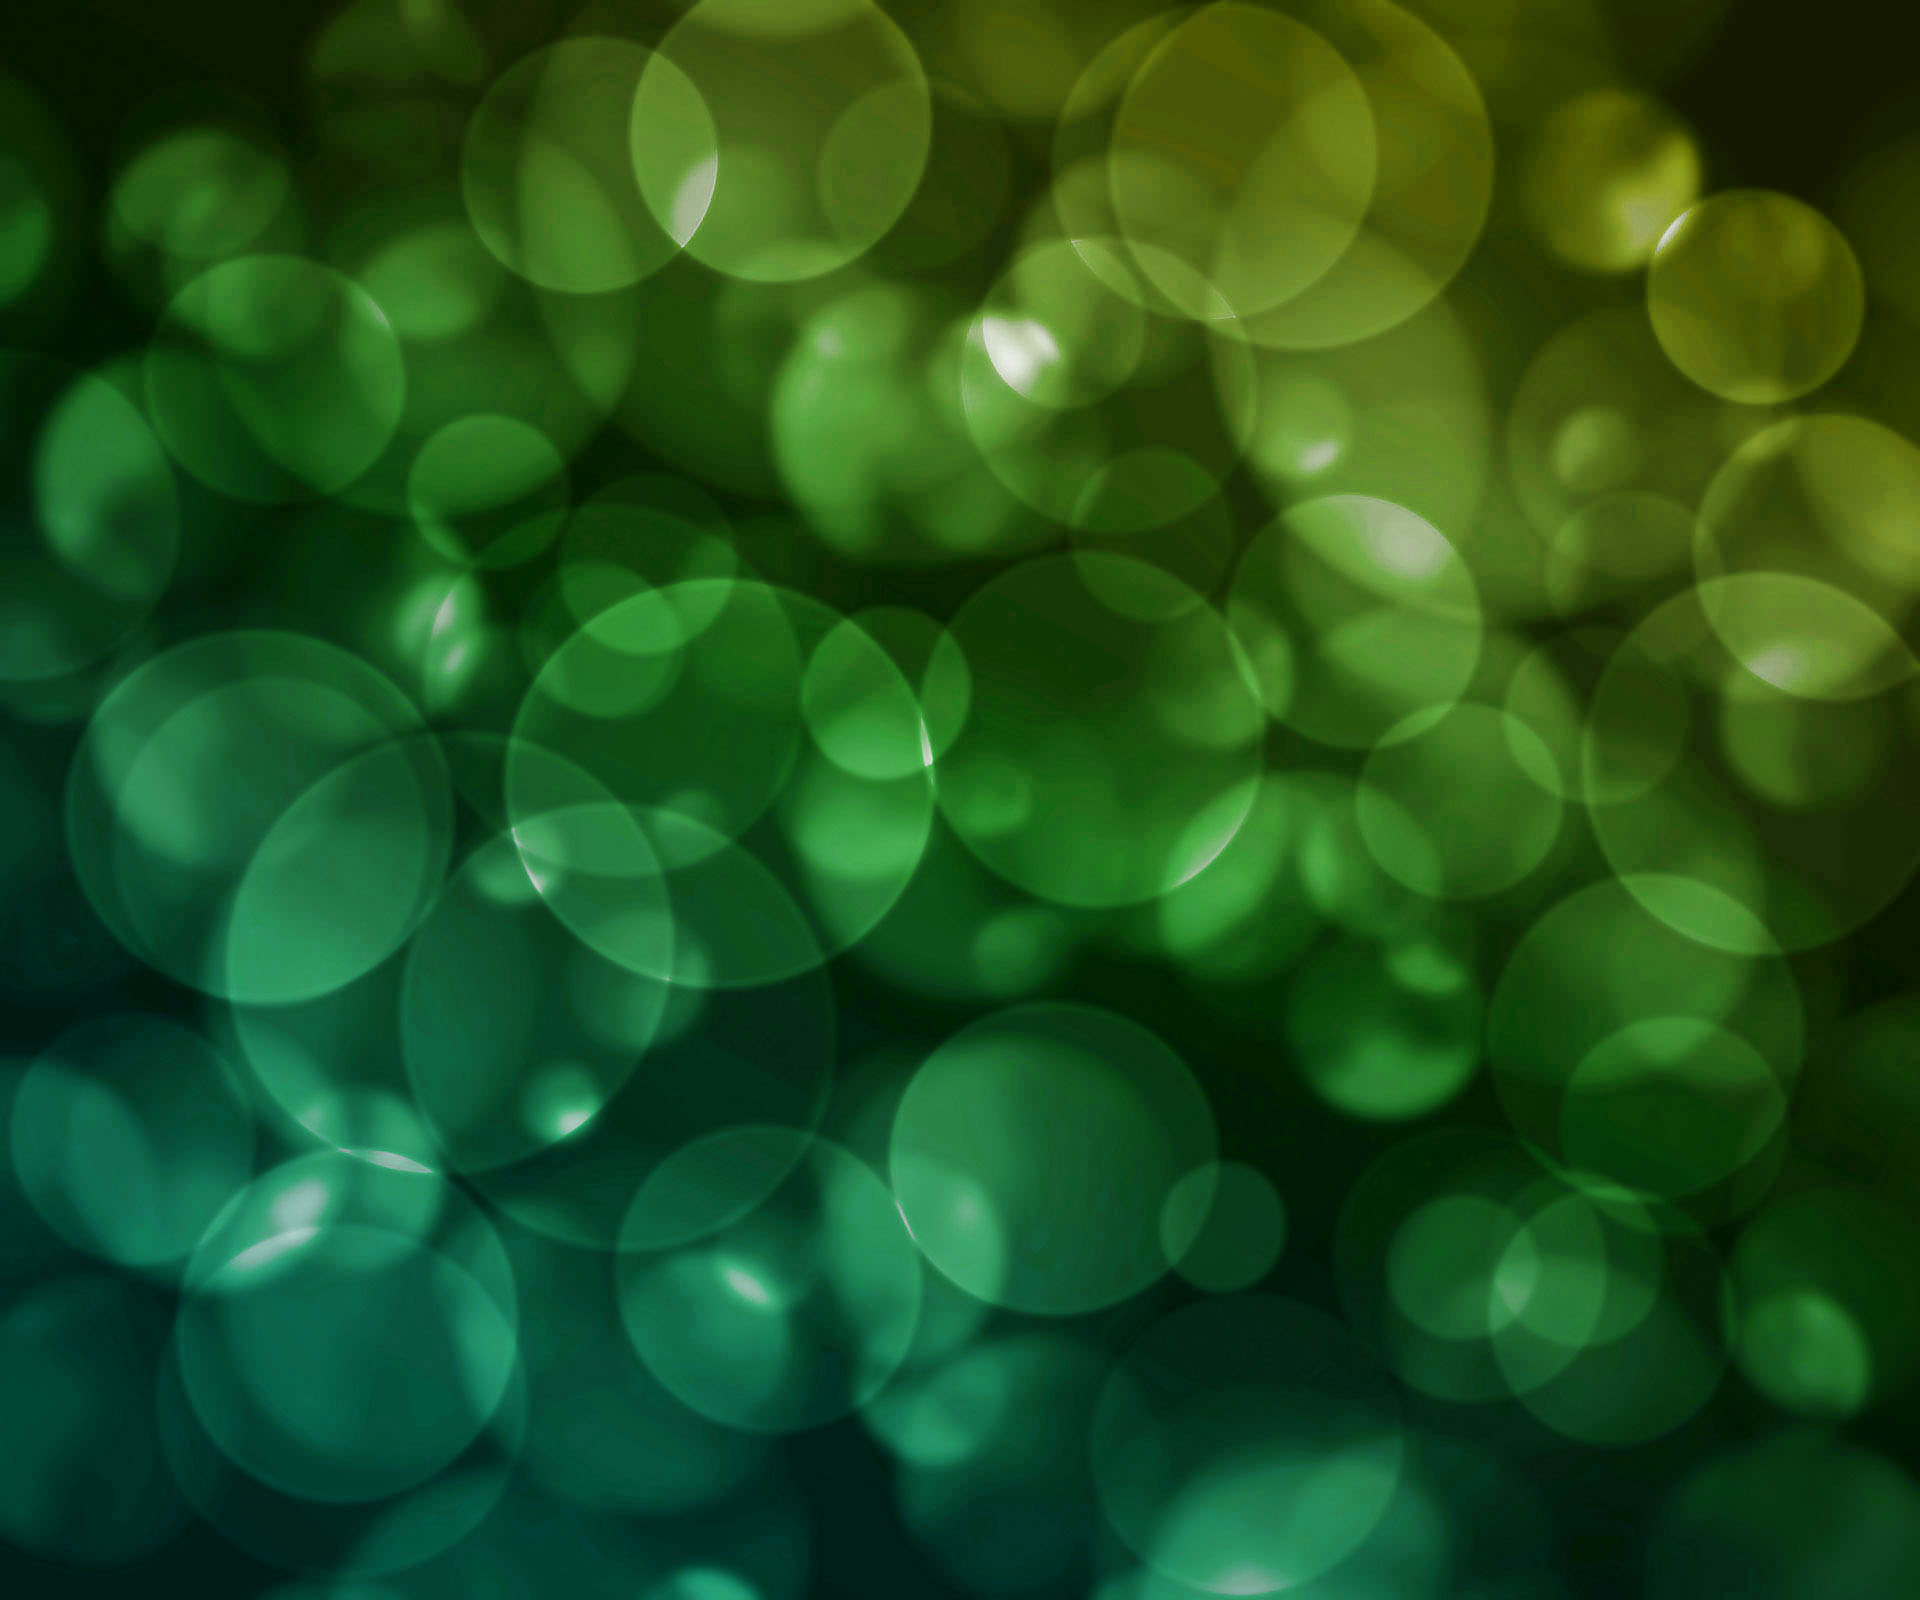 bokeh-back-green-1920